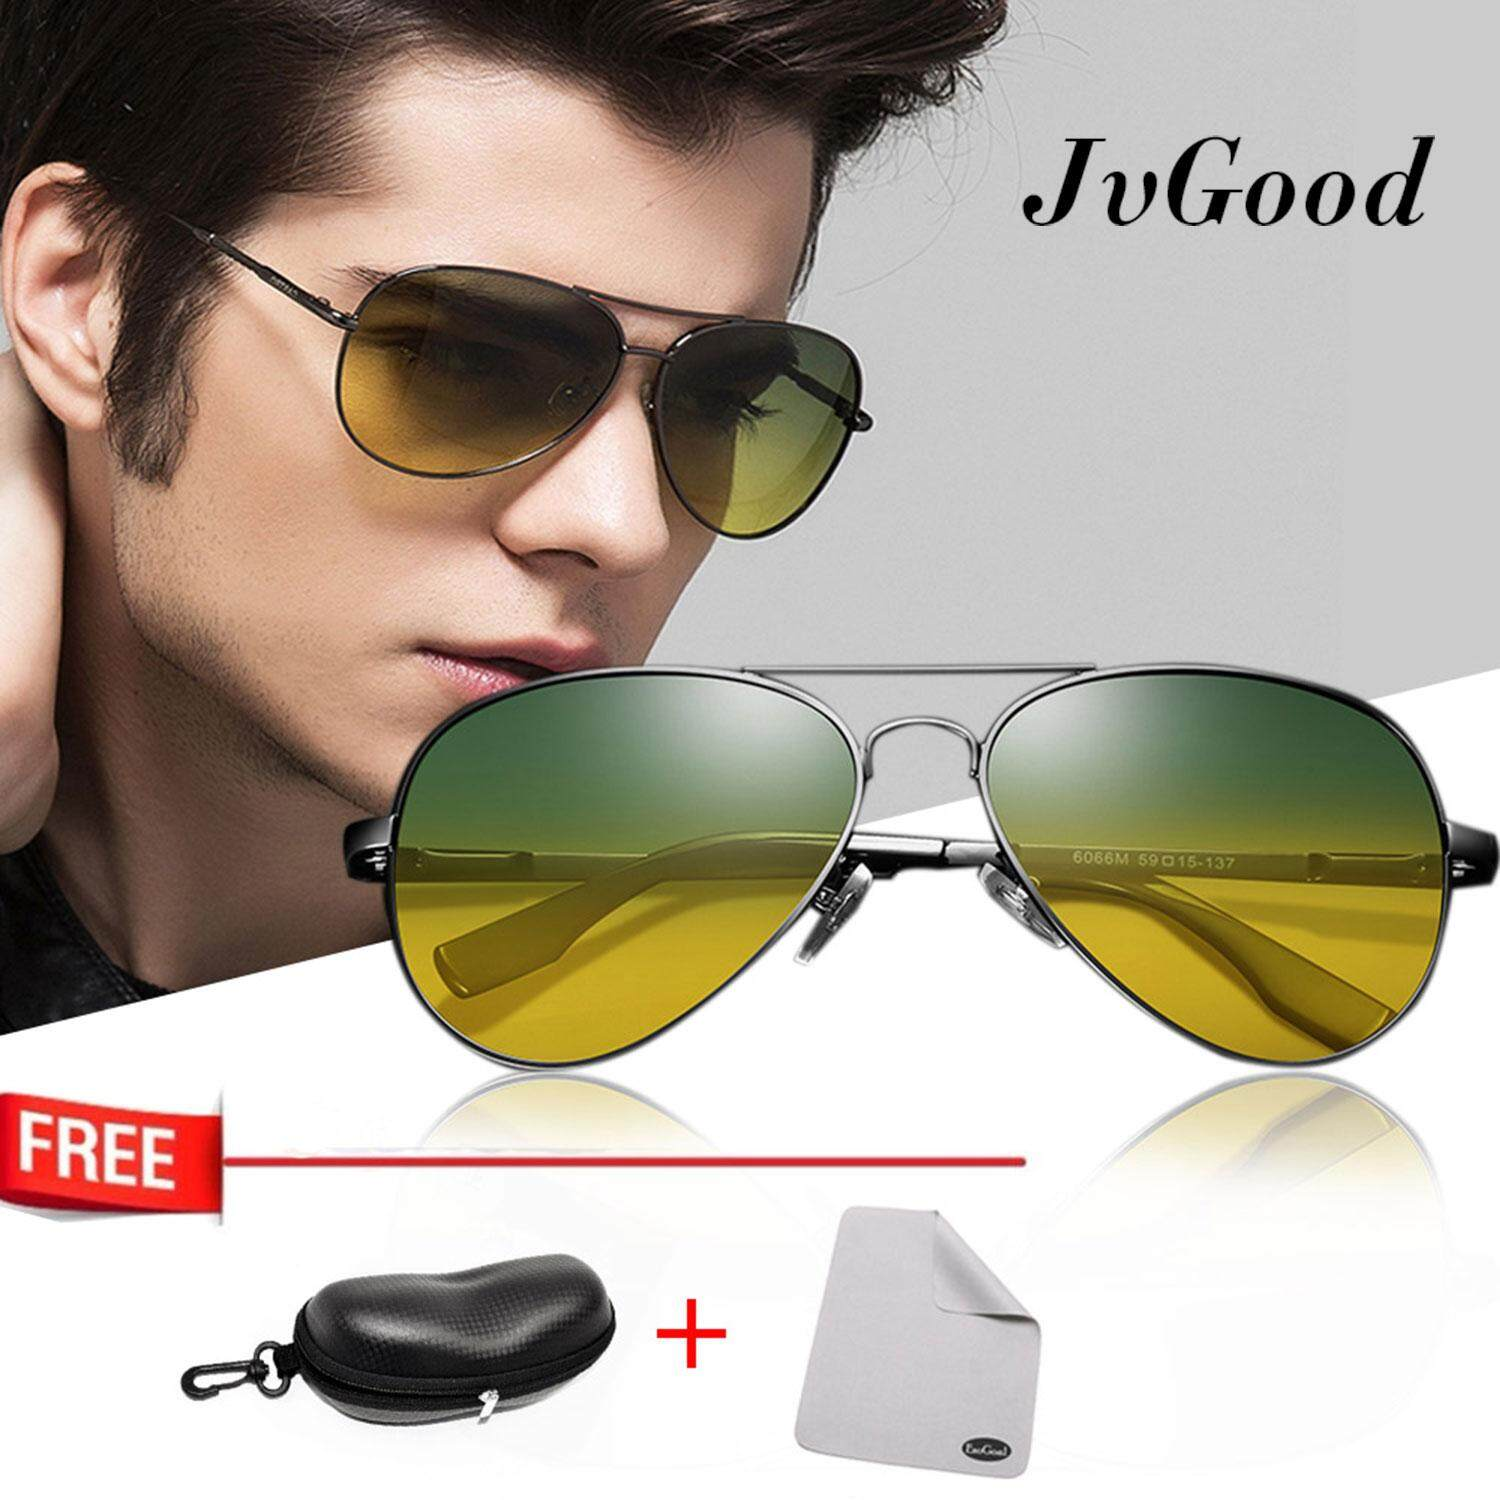 Jvgood Day Night Vision Sunglasses Glasses Anti-Glare Driving Eyewear Polarized Lens Unisex Glasses By Jvgood.